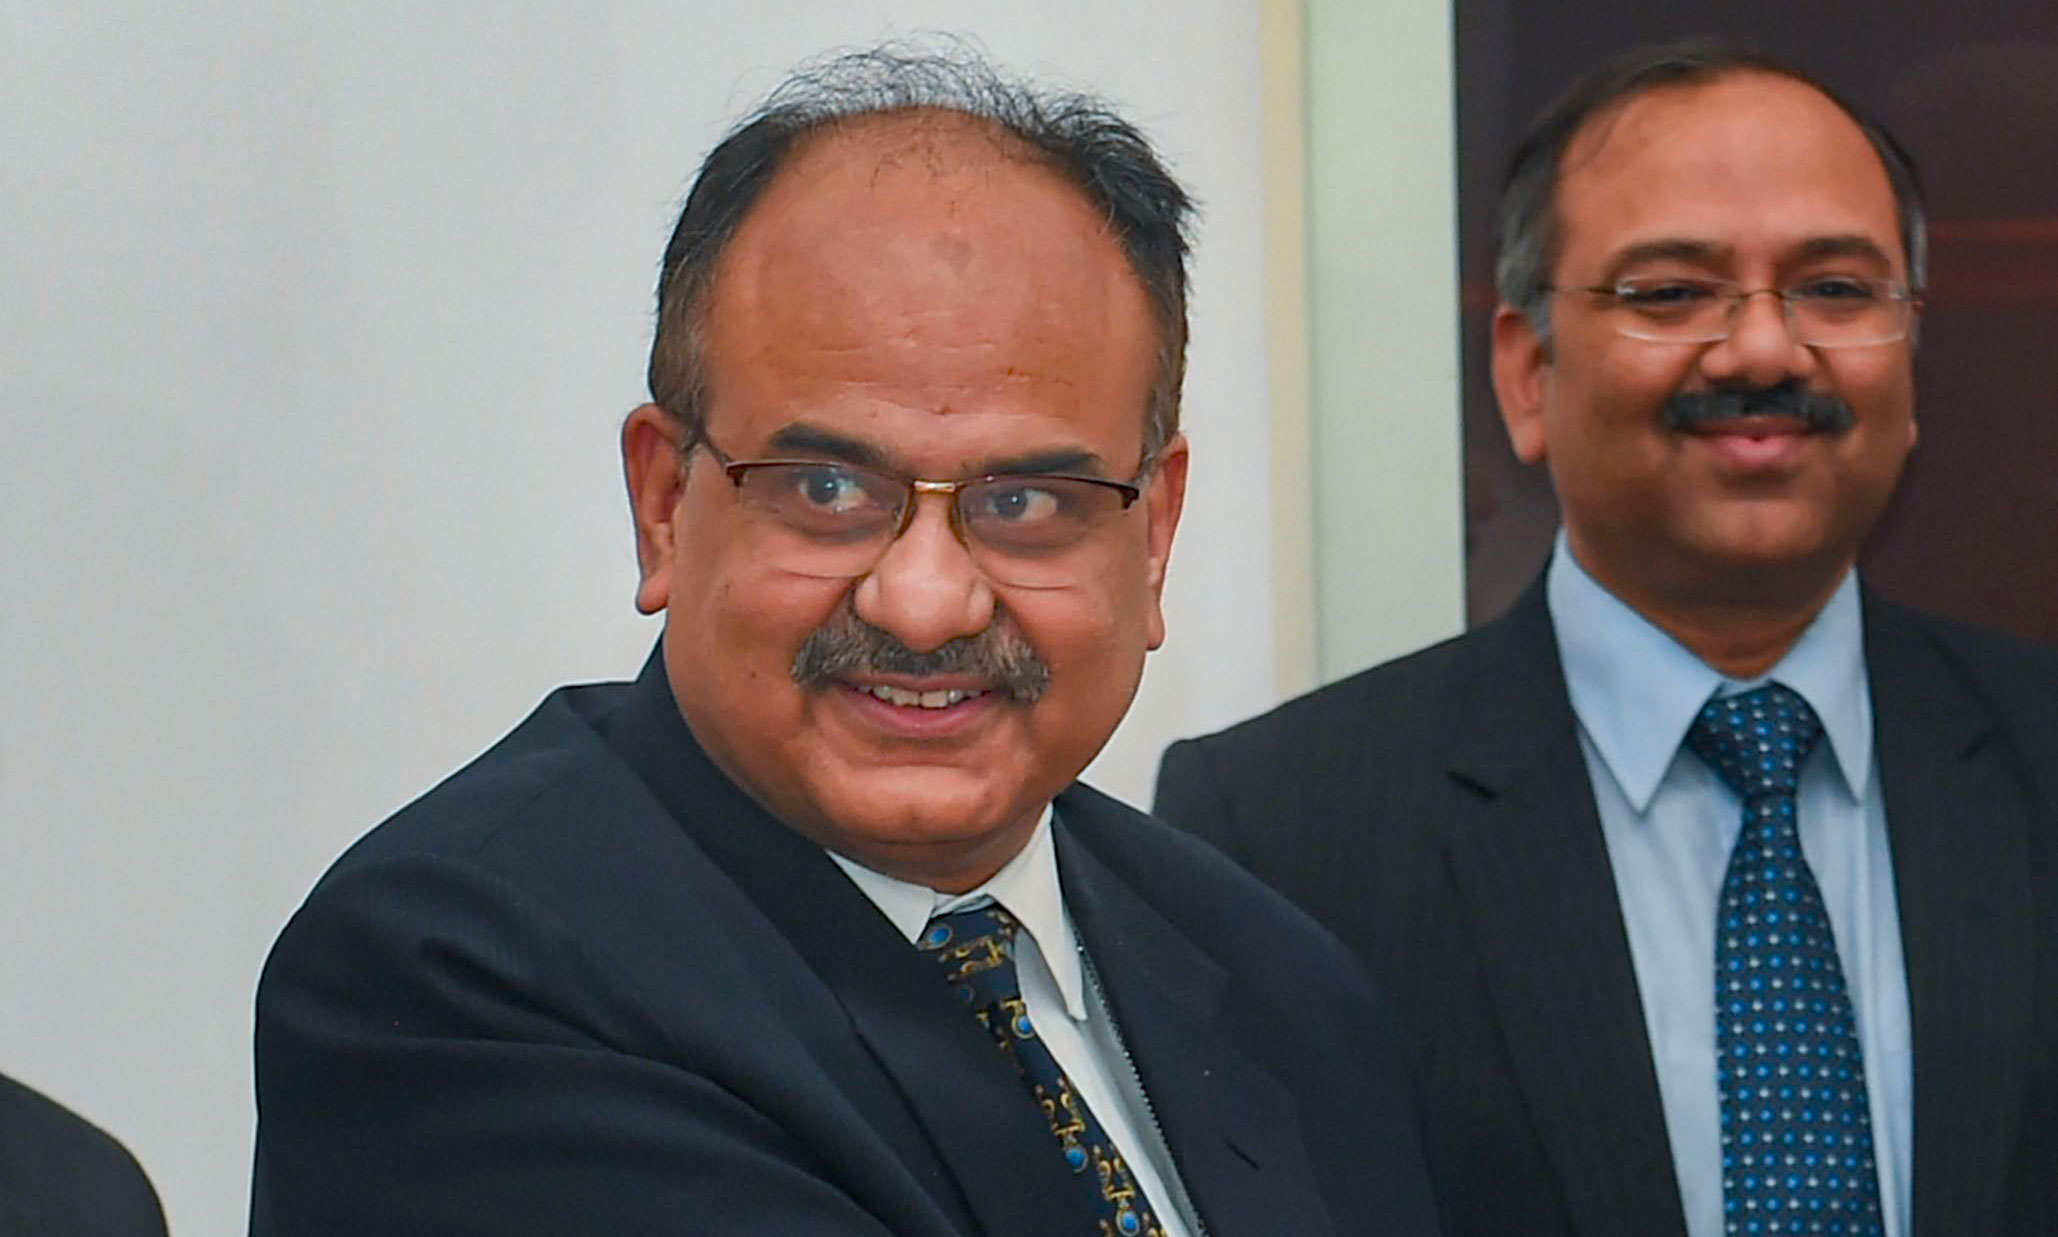 Revenue secretary Ajay Bhushan Pandey, in a meeting with top tax officials last month, had also said that Rs 1.25 lakh crore would have to be achieved in at least one of the four remaining months.